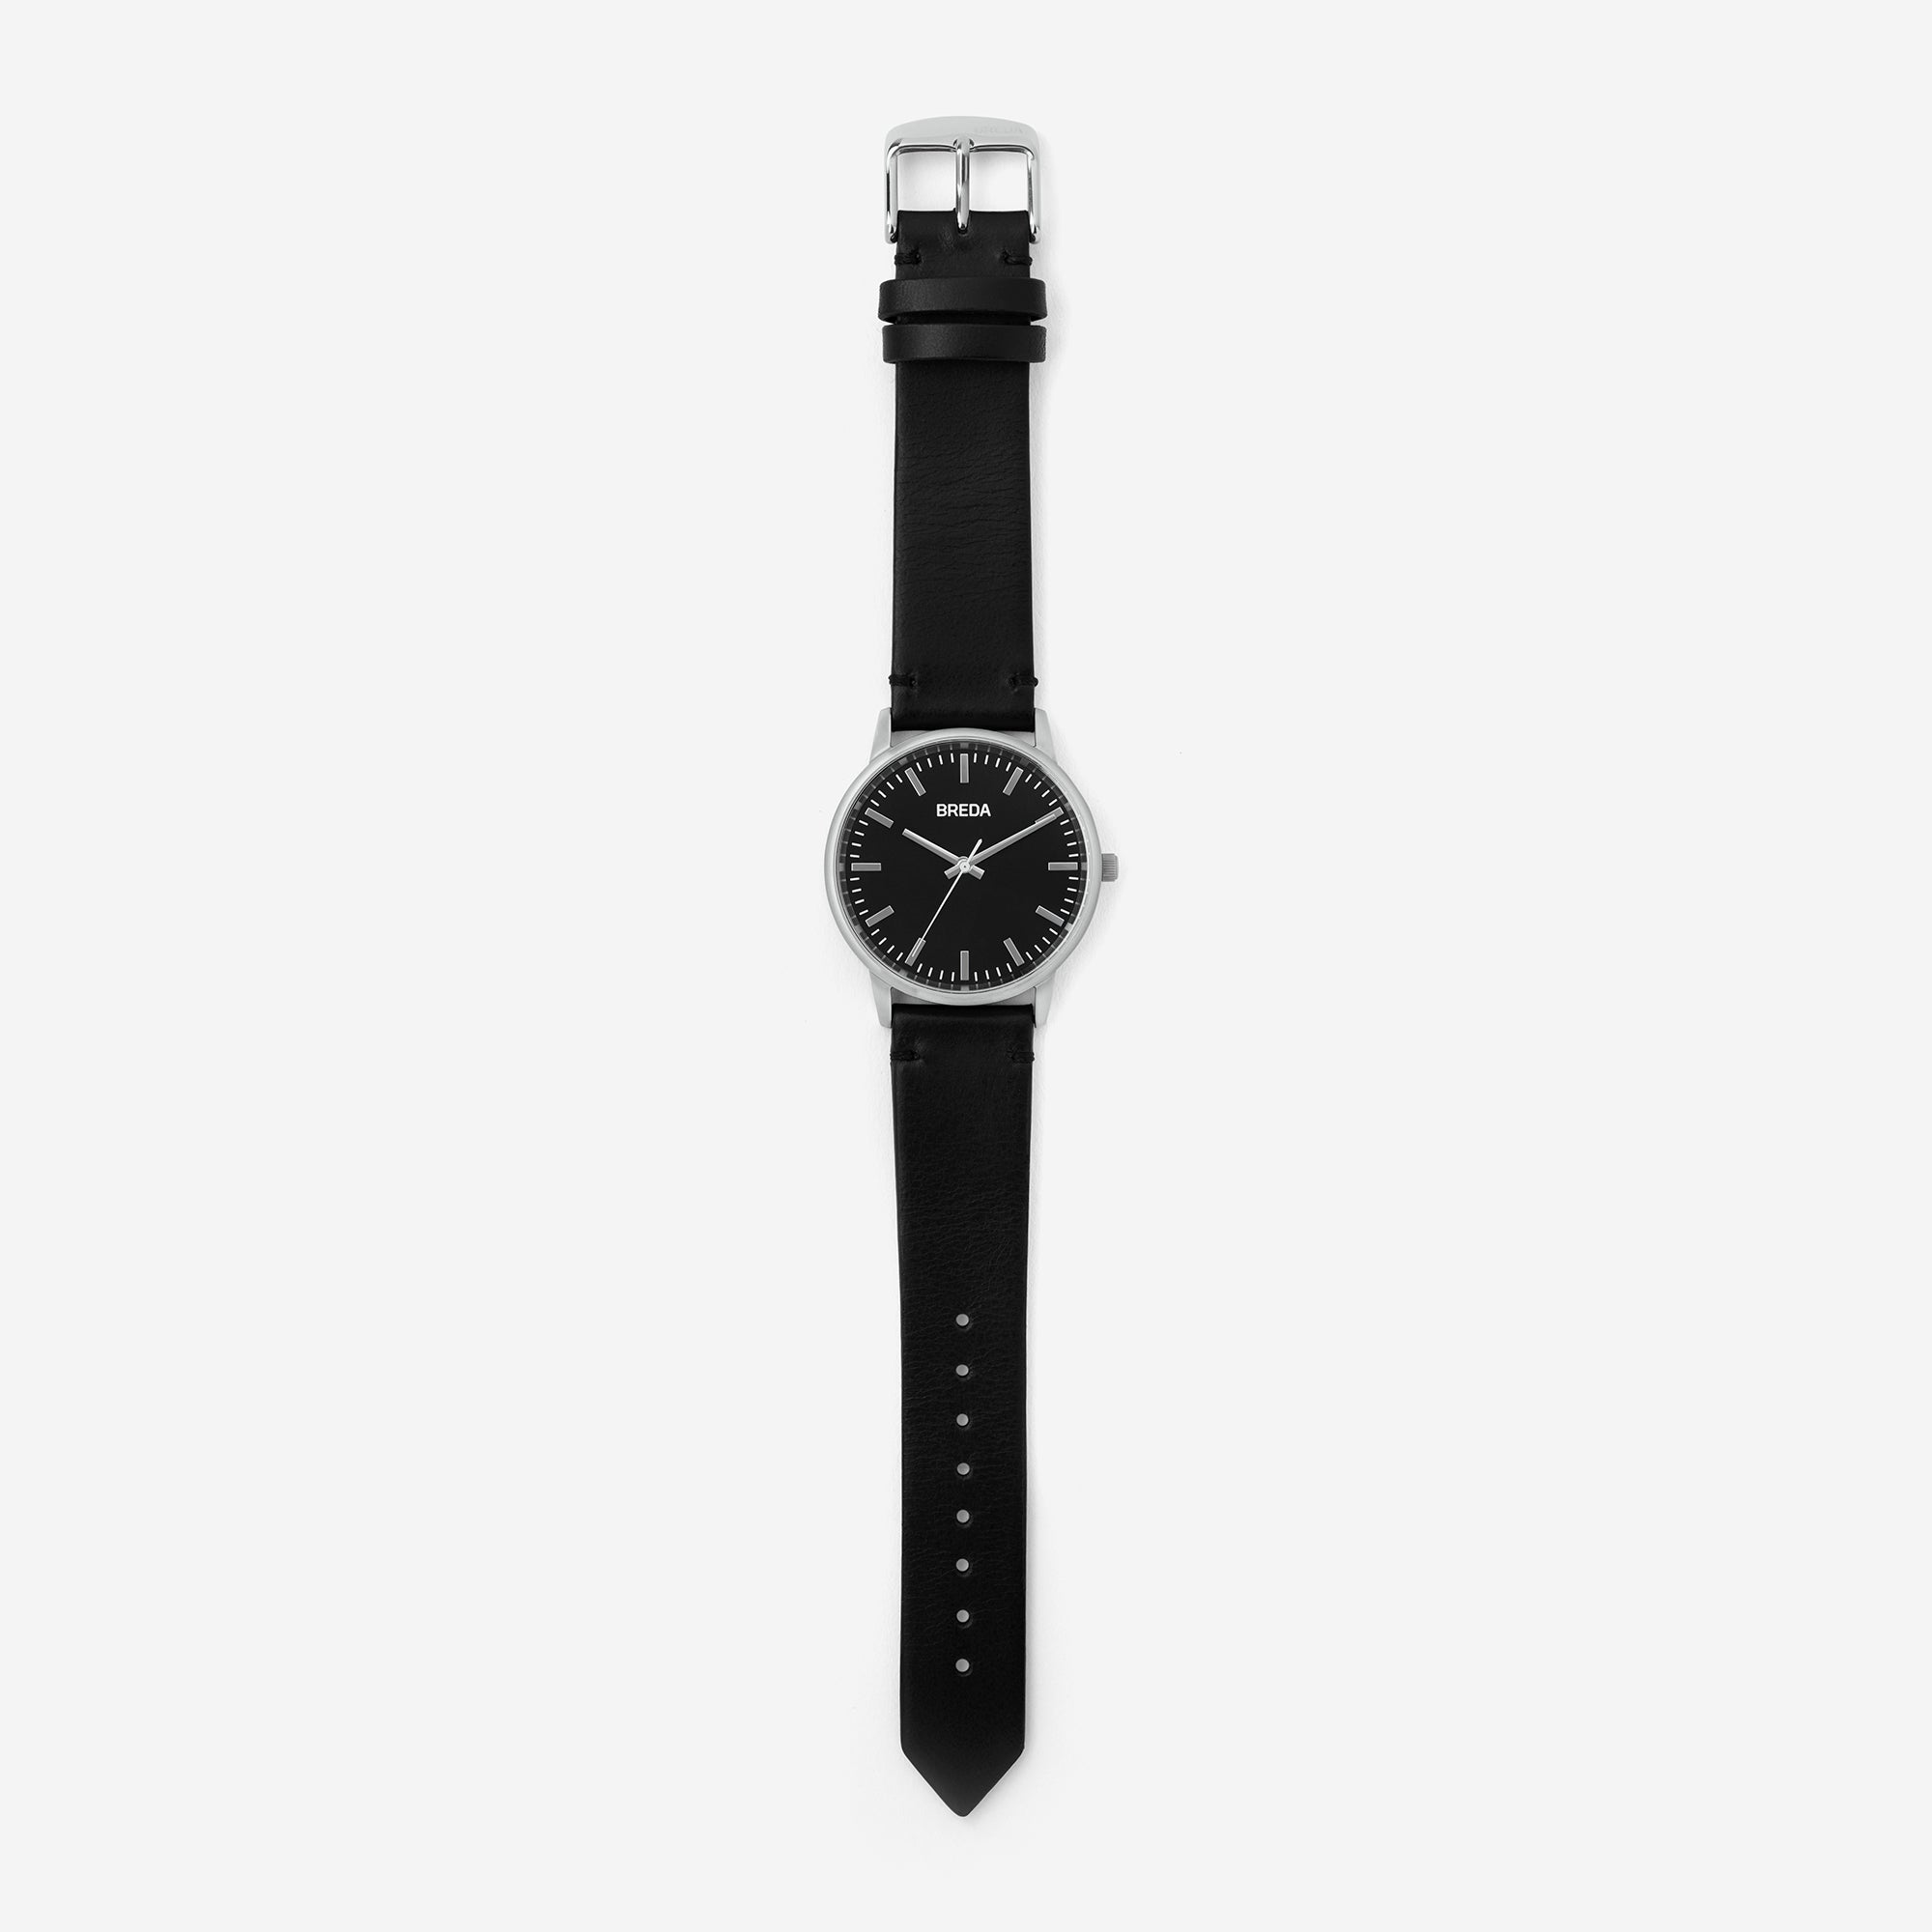 //cdn.shopify.com/s/files/1/0879/6650/products/breda-zapf-1697k-silver-black-leather-watch-long_1024x1024.jpg?v=1522793707